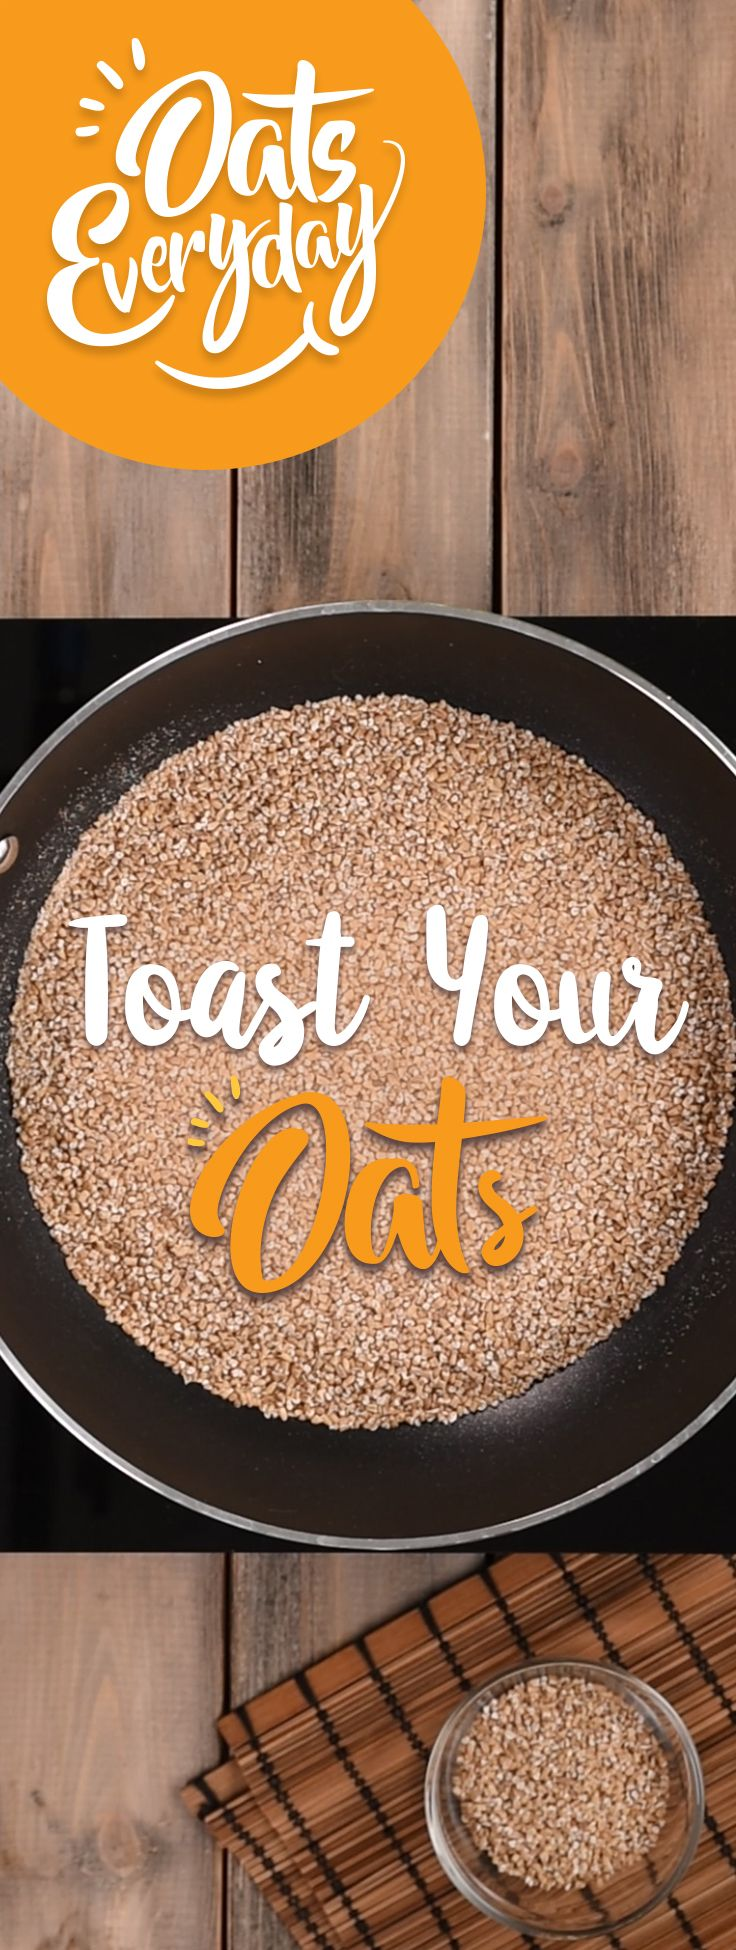 Take your oats to the next level by toasting them before cooking.